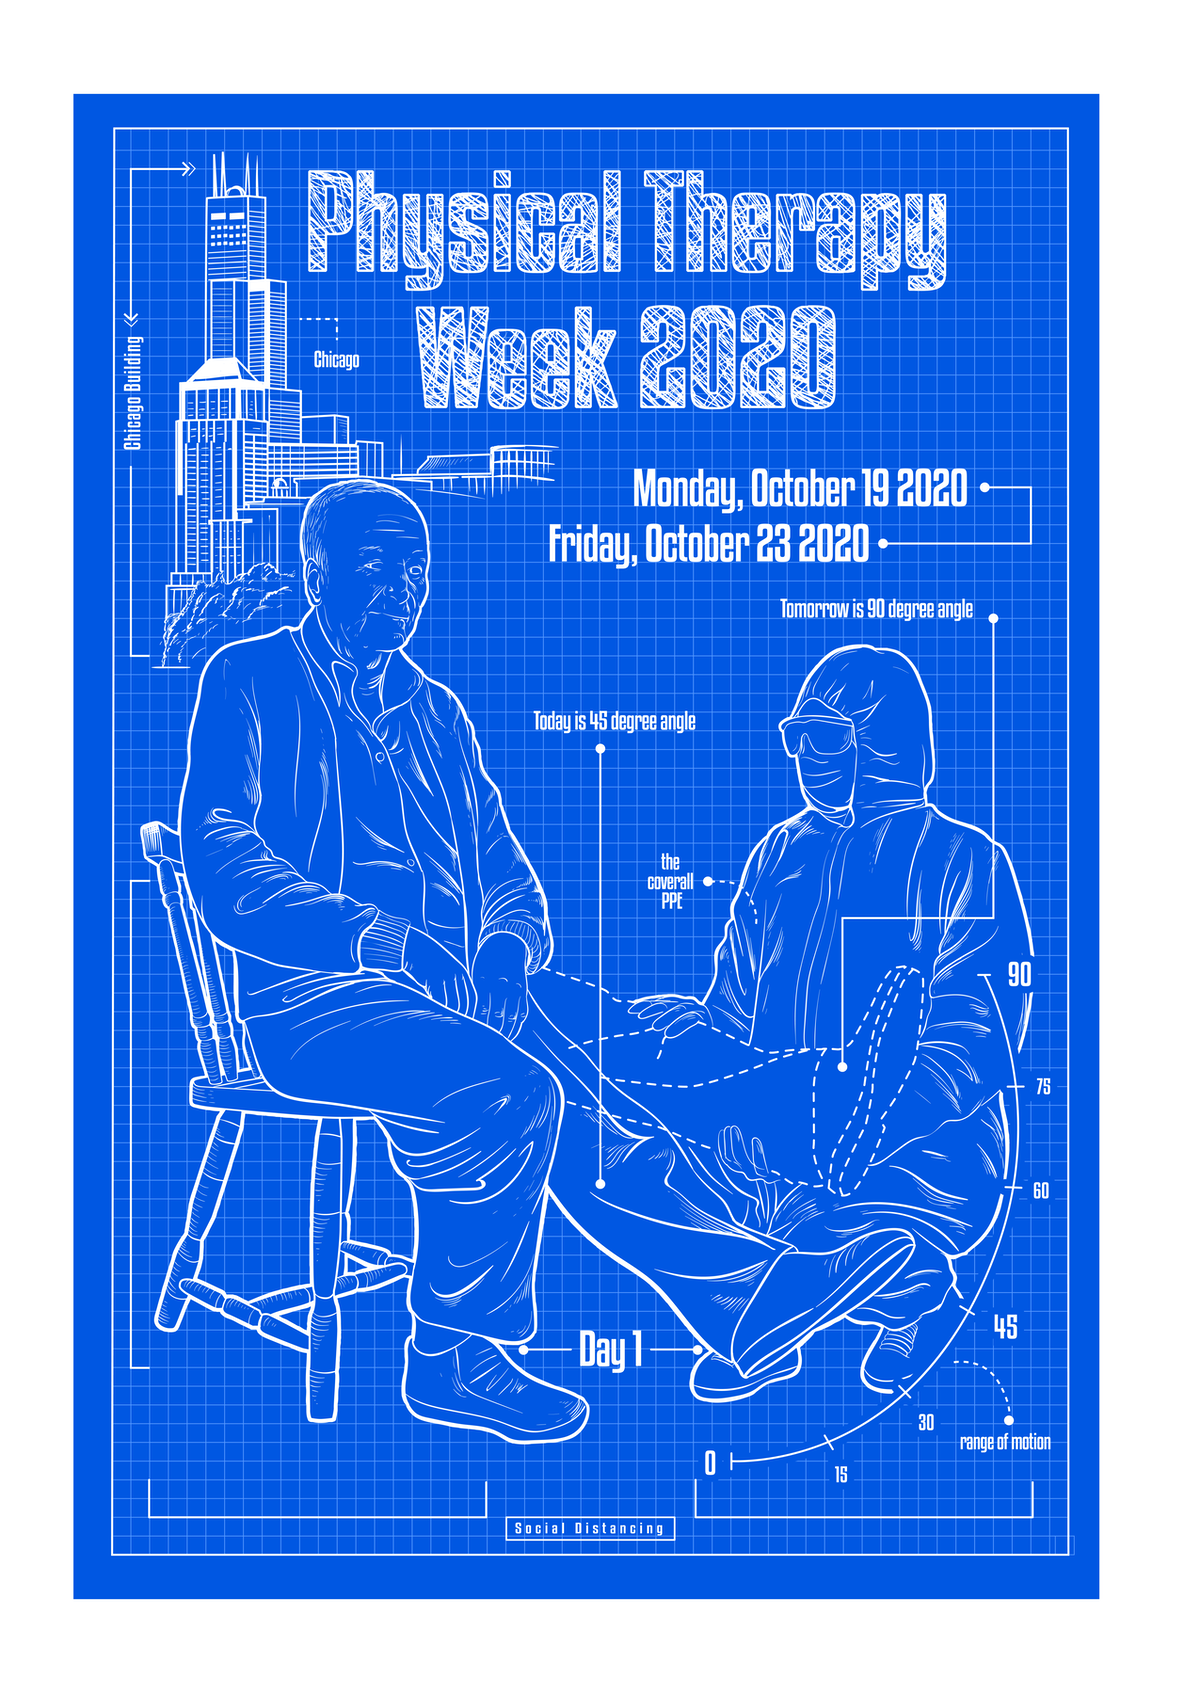 Physical Therapy Week 2020: Monday October 19 2020 to Friday, October 23 2020